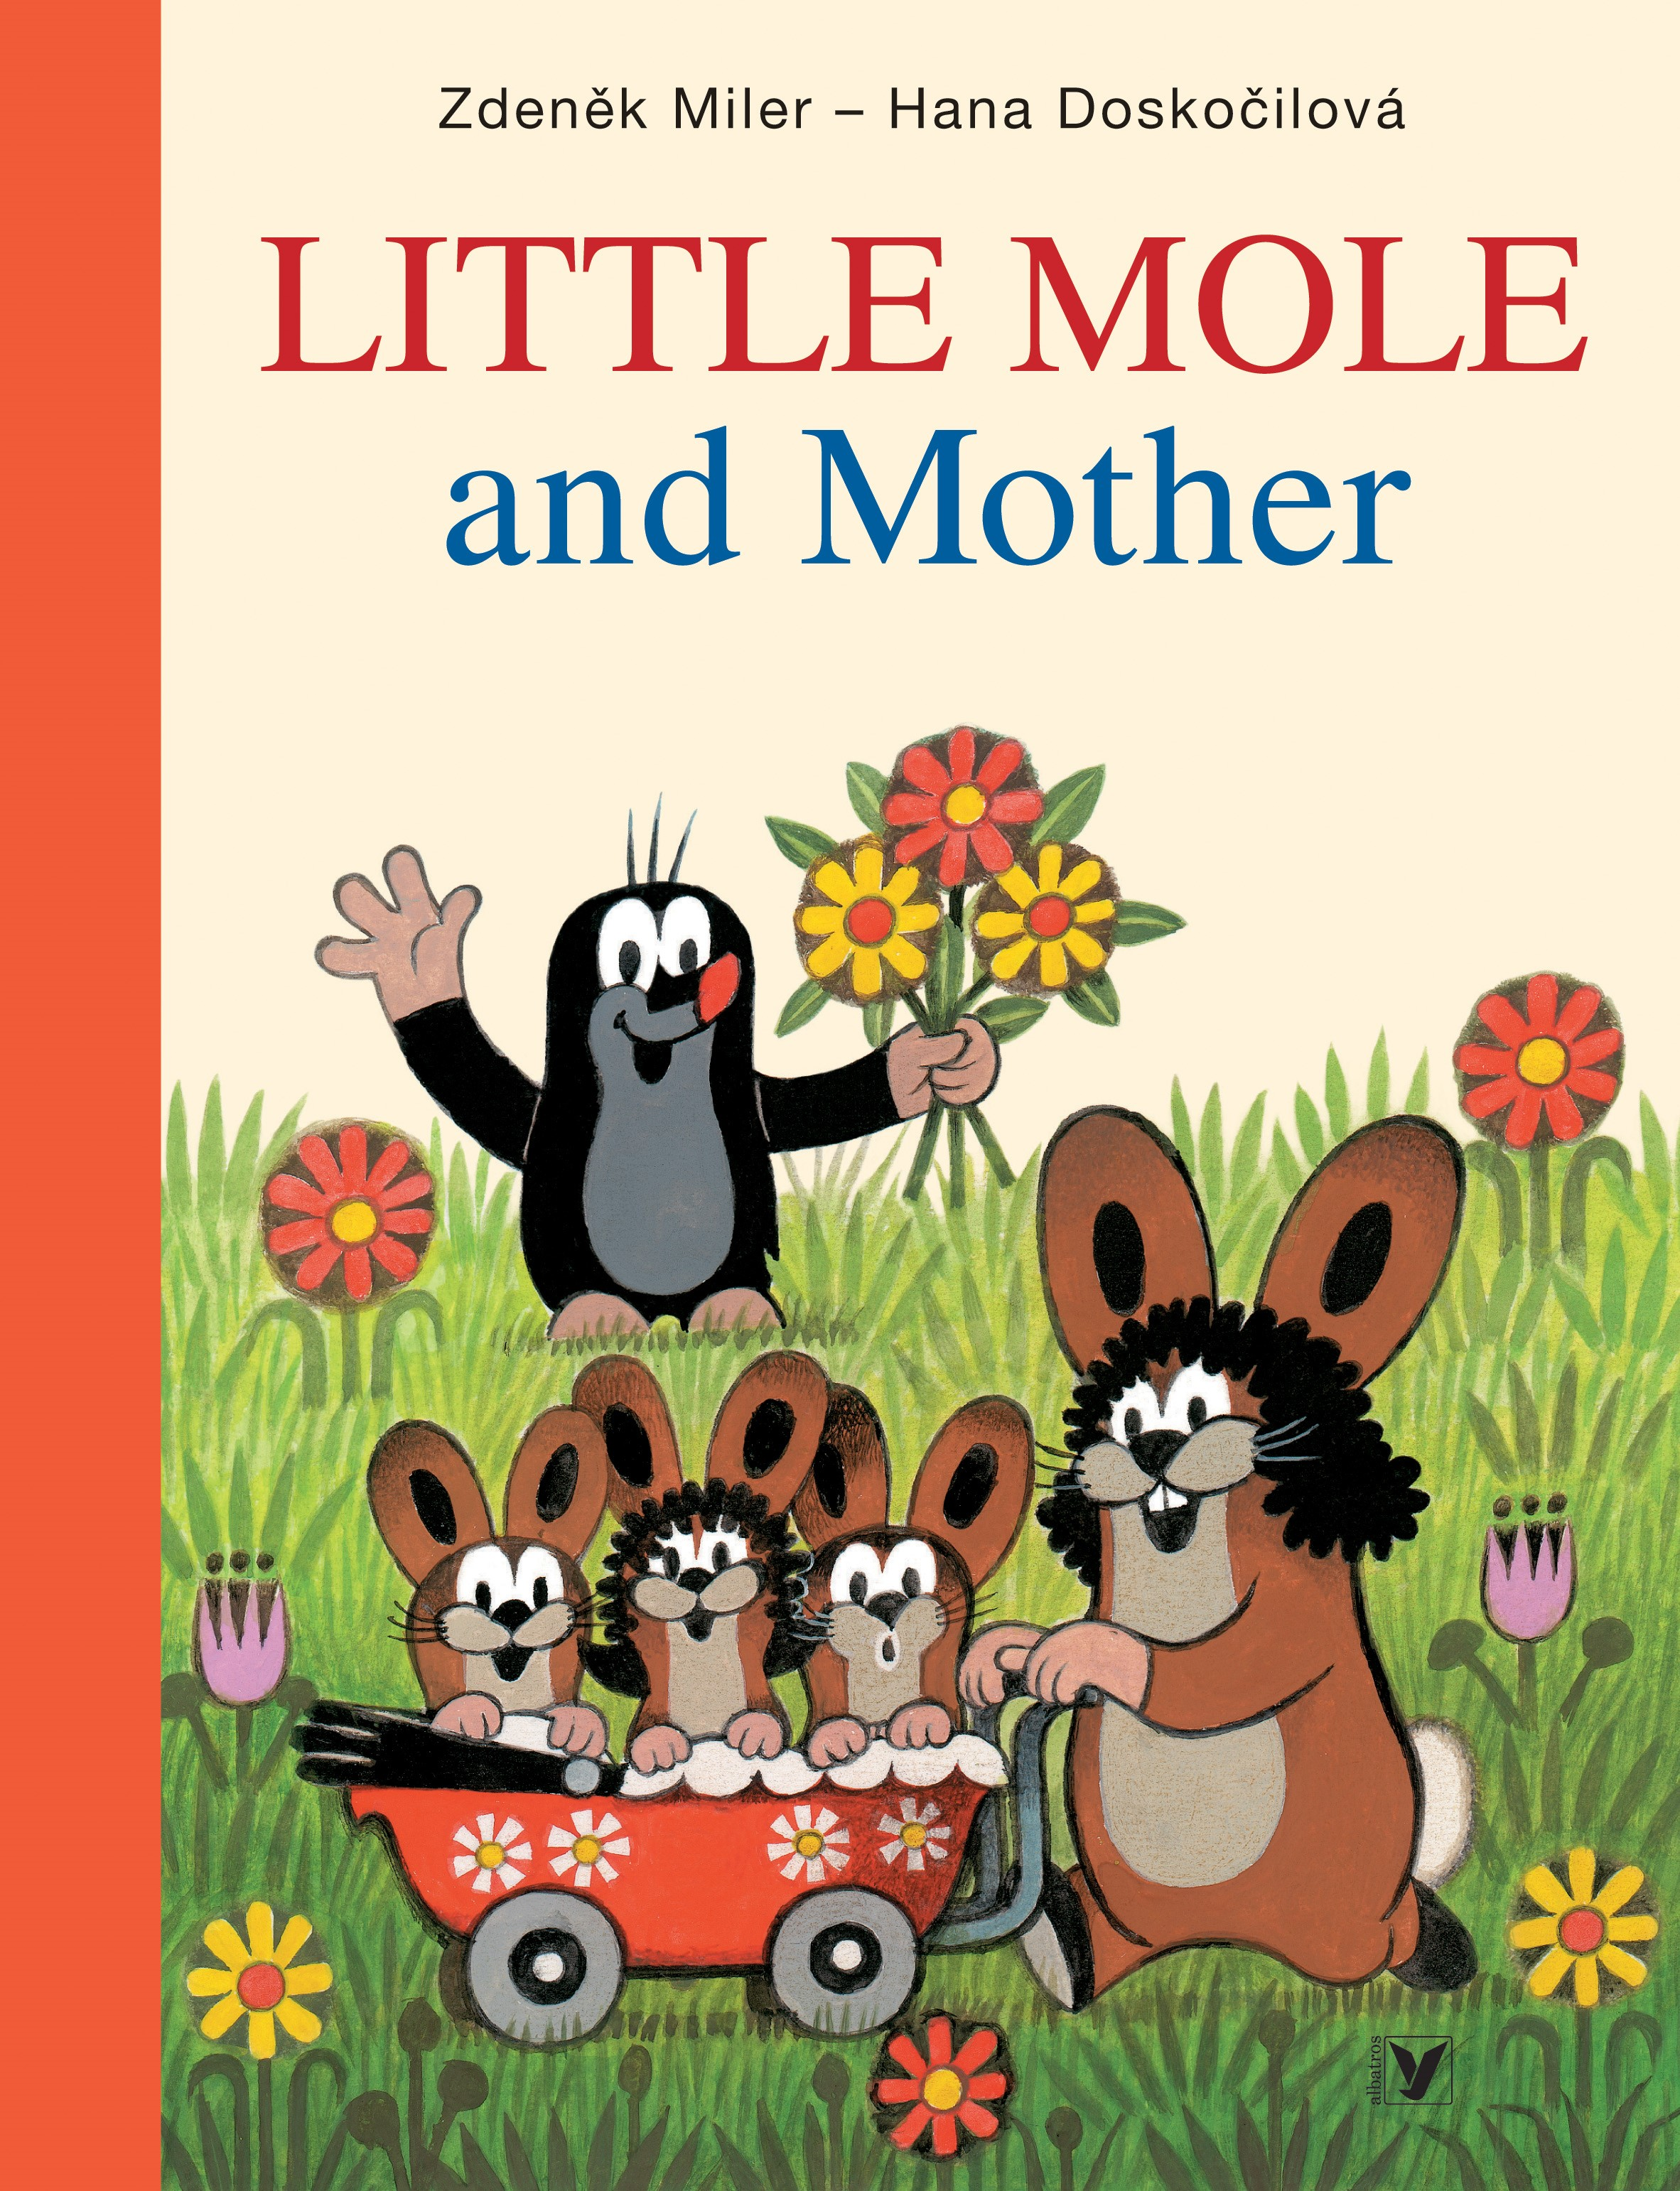 LITTLE MOLE AND MOTHER